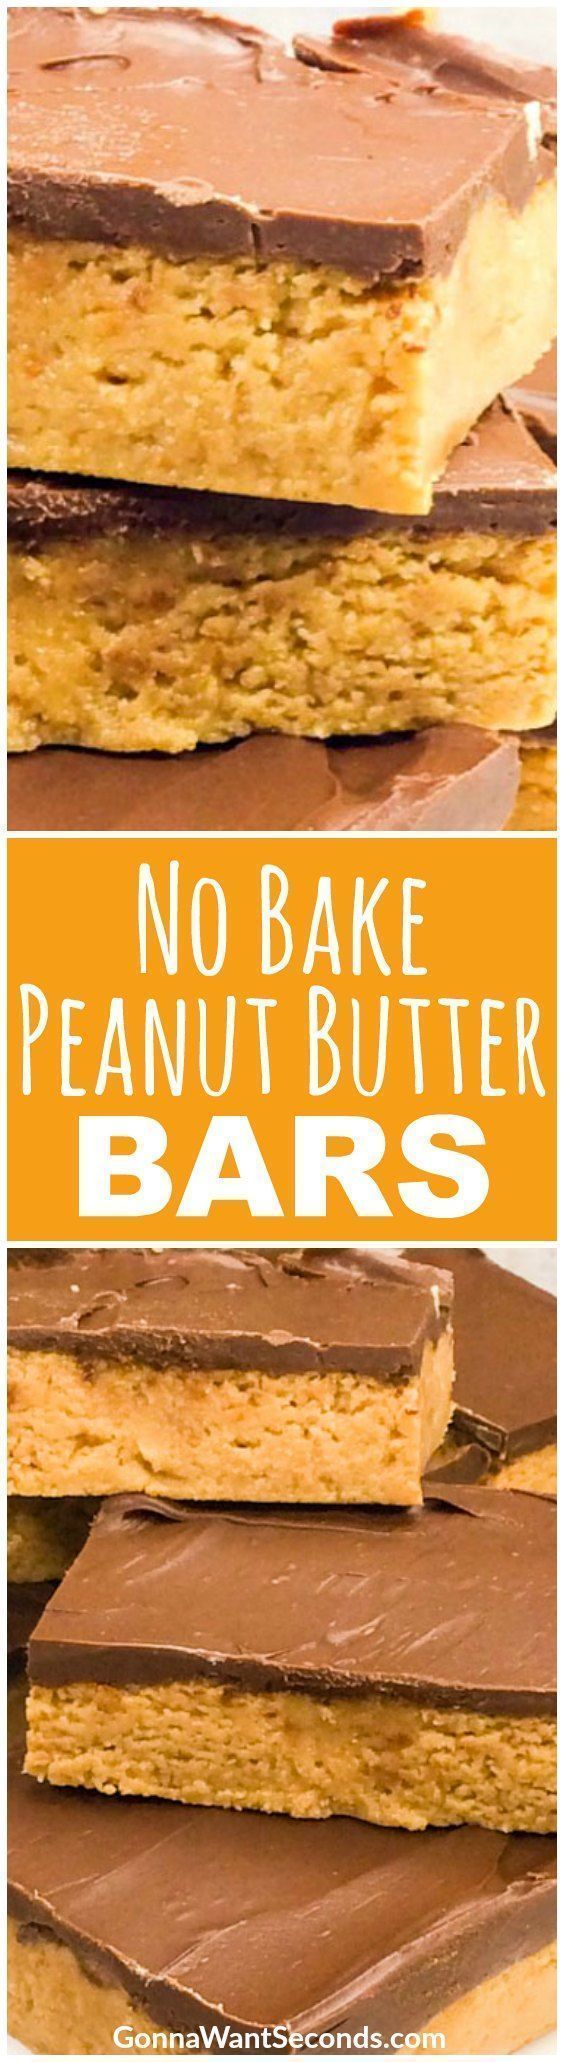 If you love peanut butter and chocolate, as much as I do, you're going to love these no-bake peanut butter bars.Perfect for any occasion and guaranteed to please everyone who can't get enough of that irresistible combination of peanut butter and chocolate! #NoBake #PeanutButter #Bars #Easy #Chocolate #School #9x13 #Best #Homemade #Gooey #Flourless #Kids #Chewy #DeliciousFood #NoEgg #Eggless #ChocolateChips #SemiSweet #BlowingRock #ConfectionersSugar